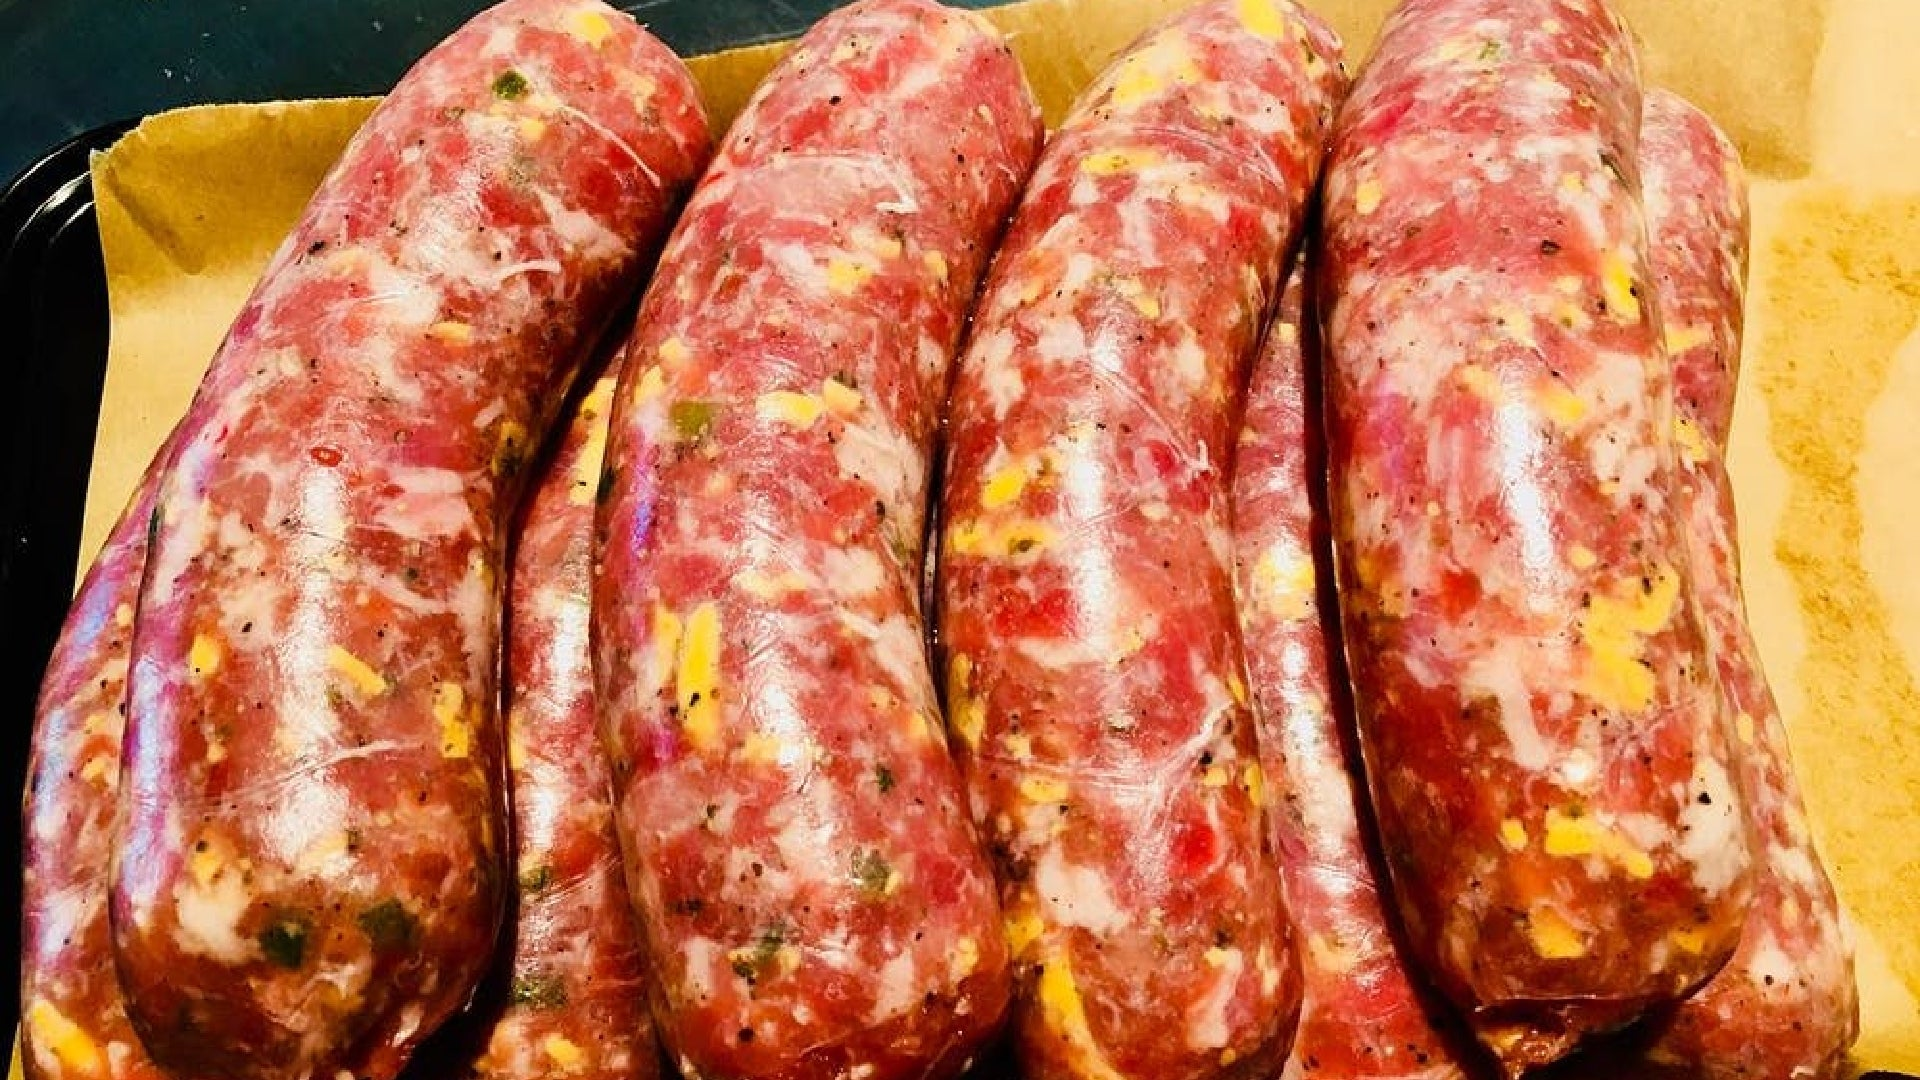 A picture looking down at several uncooked cheddar sausages stacked on top of each other on parchment paper.